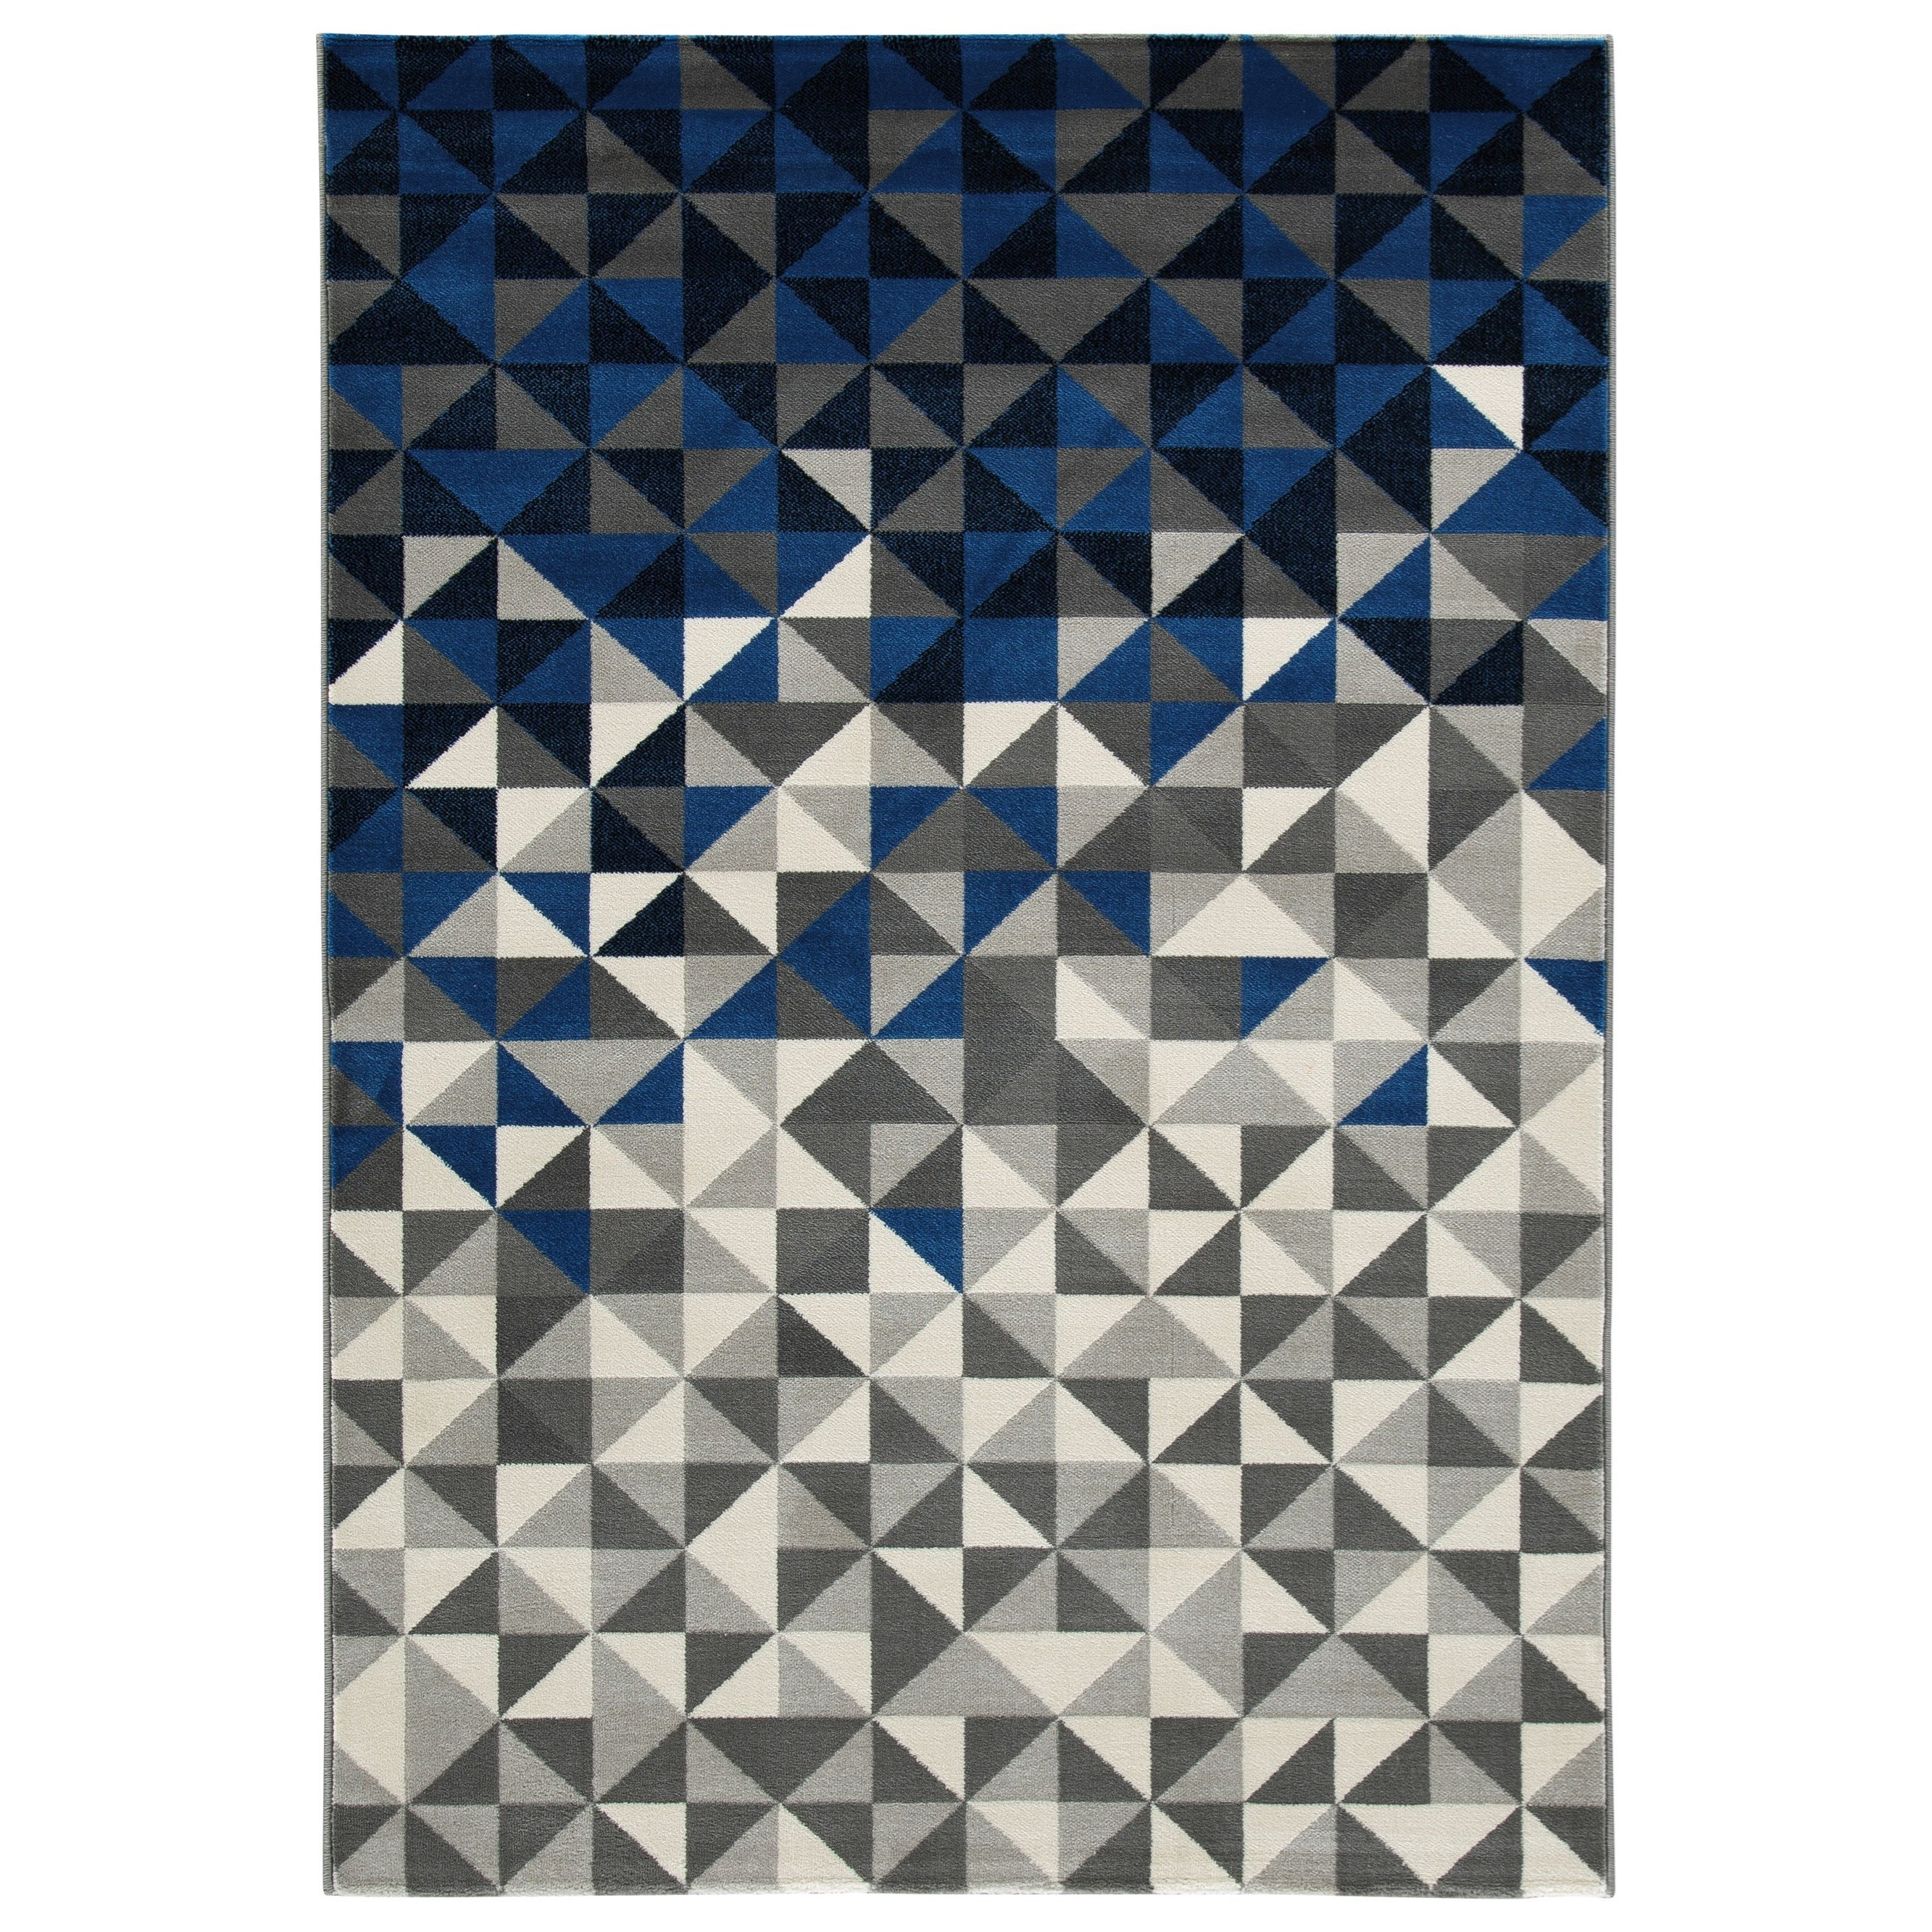 Contemporary Area Rugs Juancho Multi Medium Rug by Ashley at Morris Home